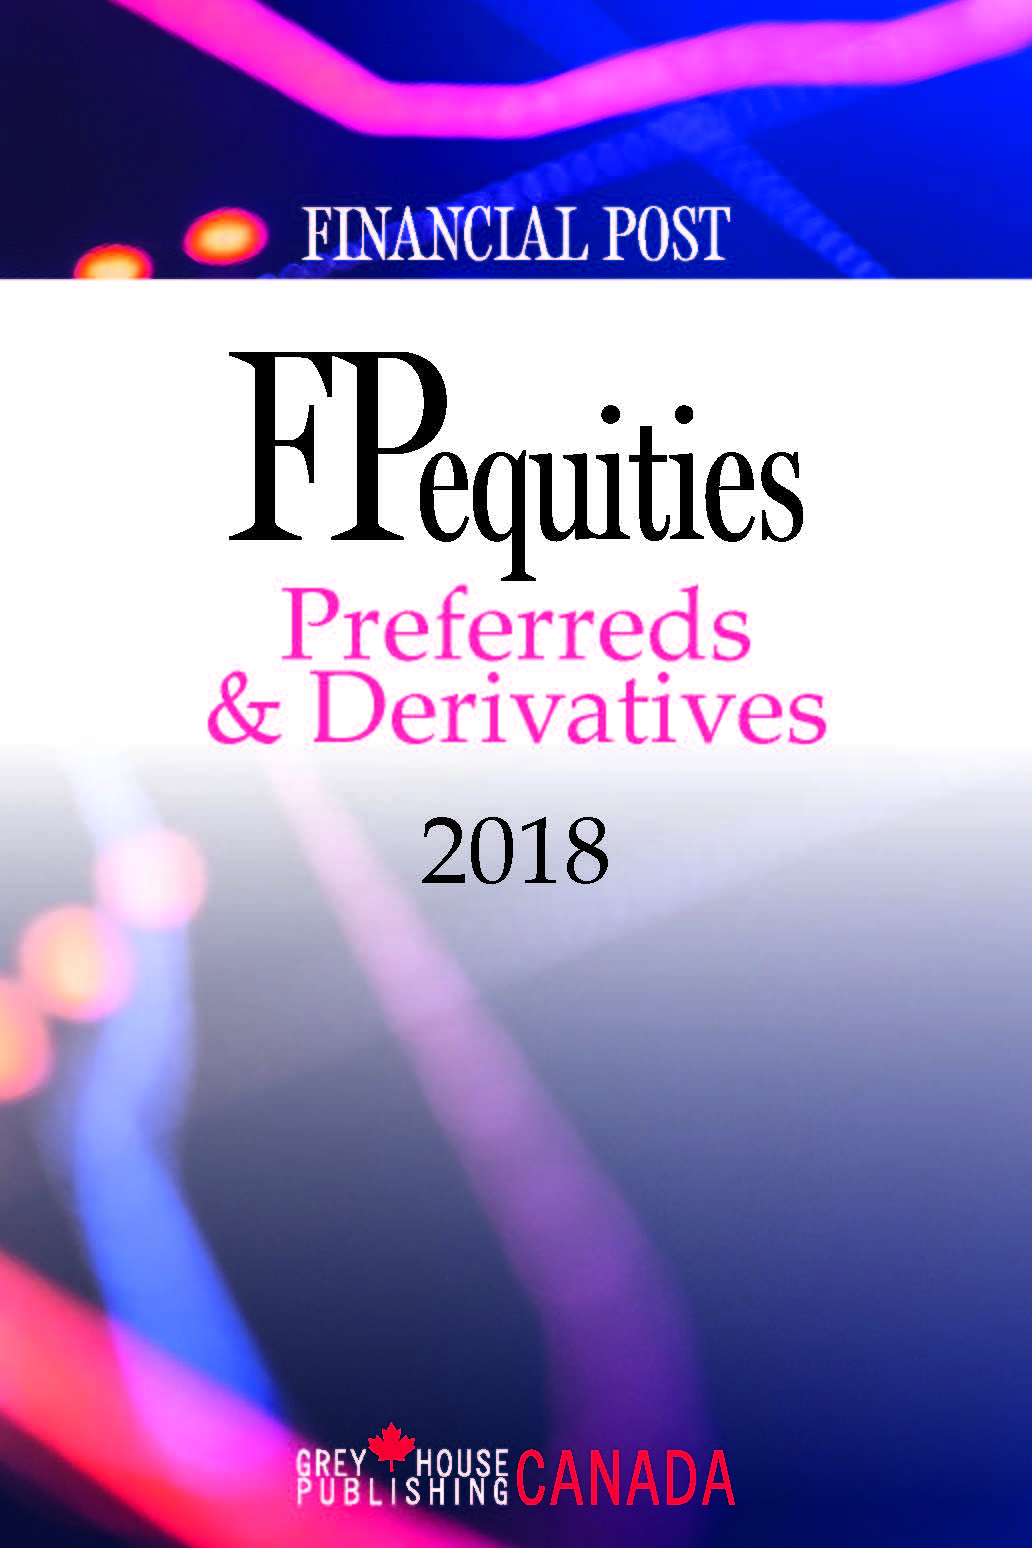 FP Equities - Preferreds & Derivatives